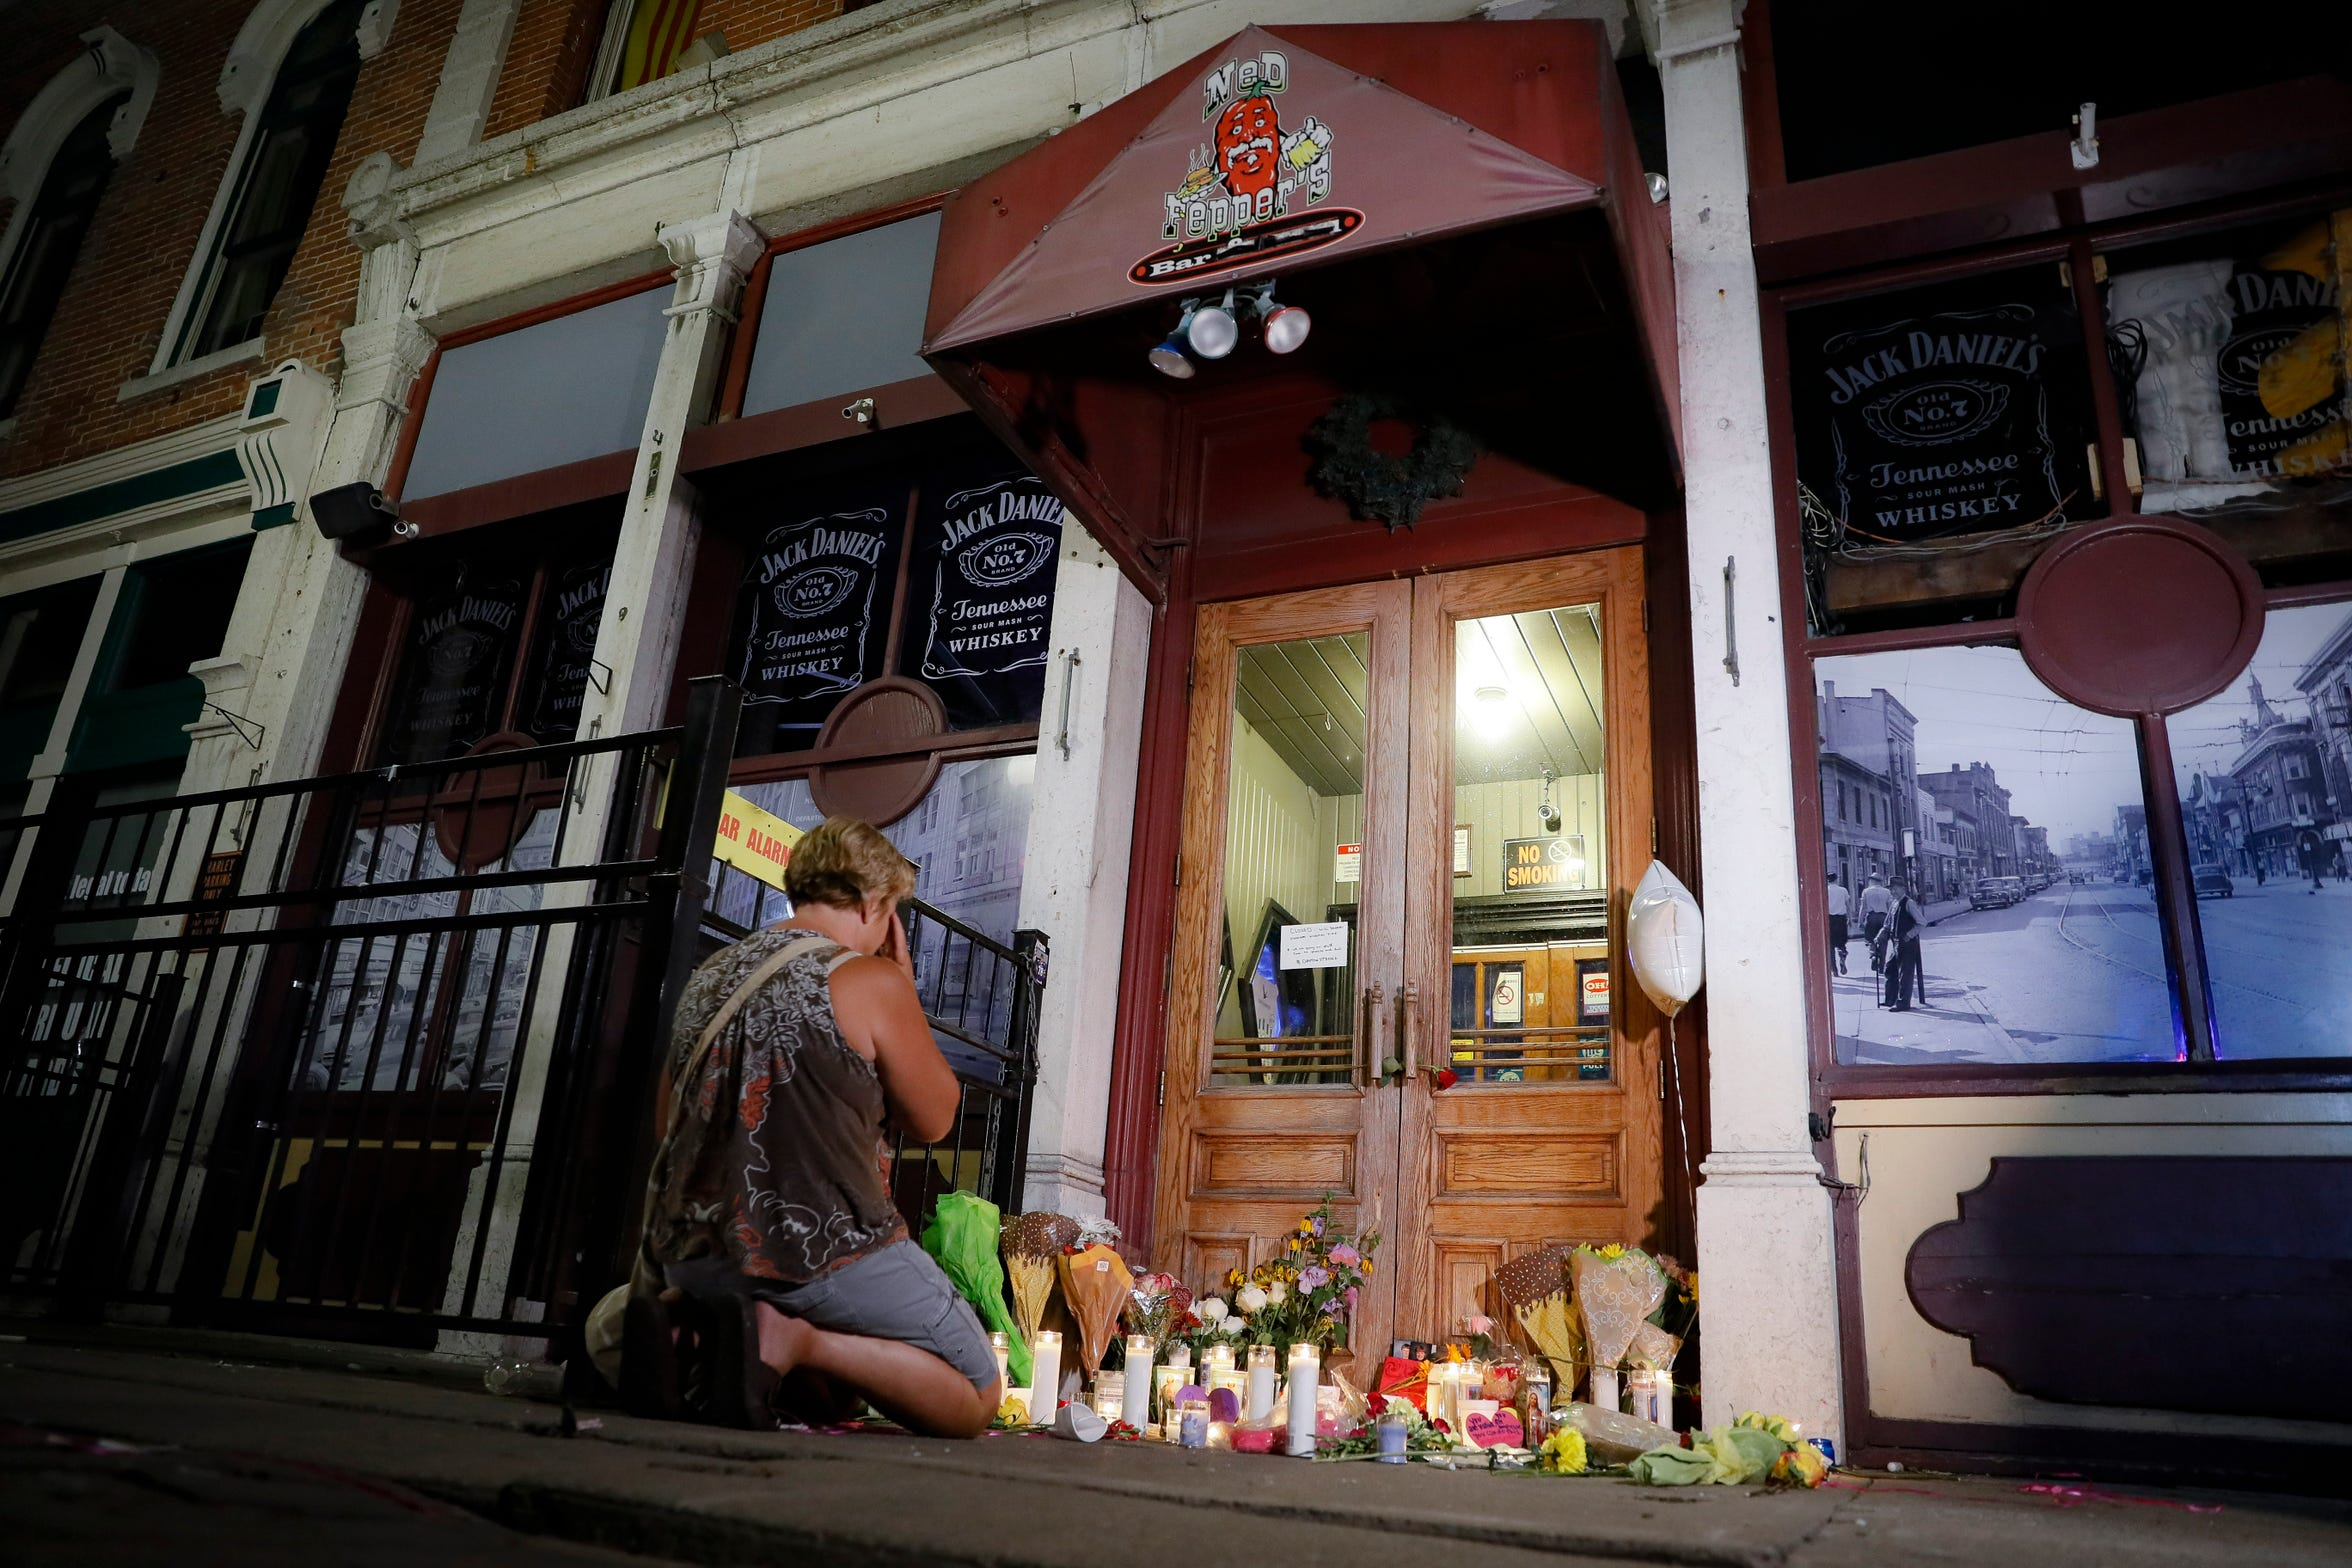 Mourners visit a makeshift memorial outside Ned Peppers bar following a vigil at the scene of a mass shooting, Sunday, Aug. 4, 2019, in Dayton, Ohio.